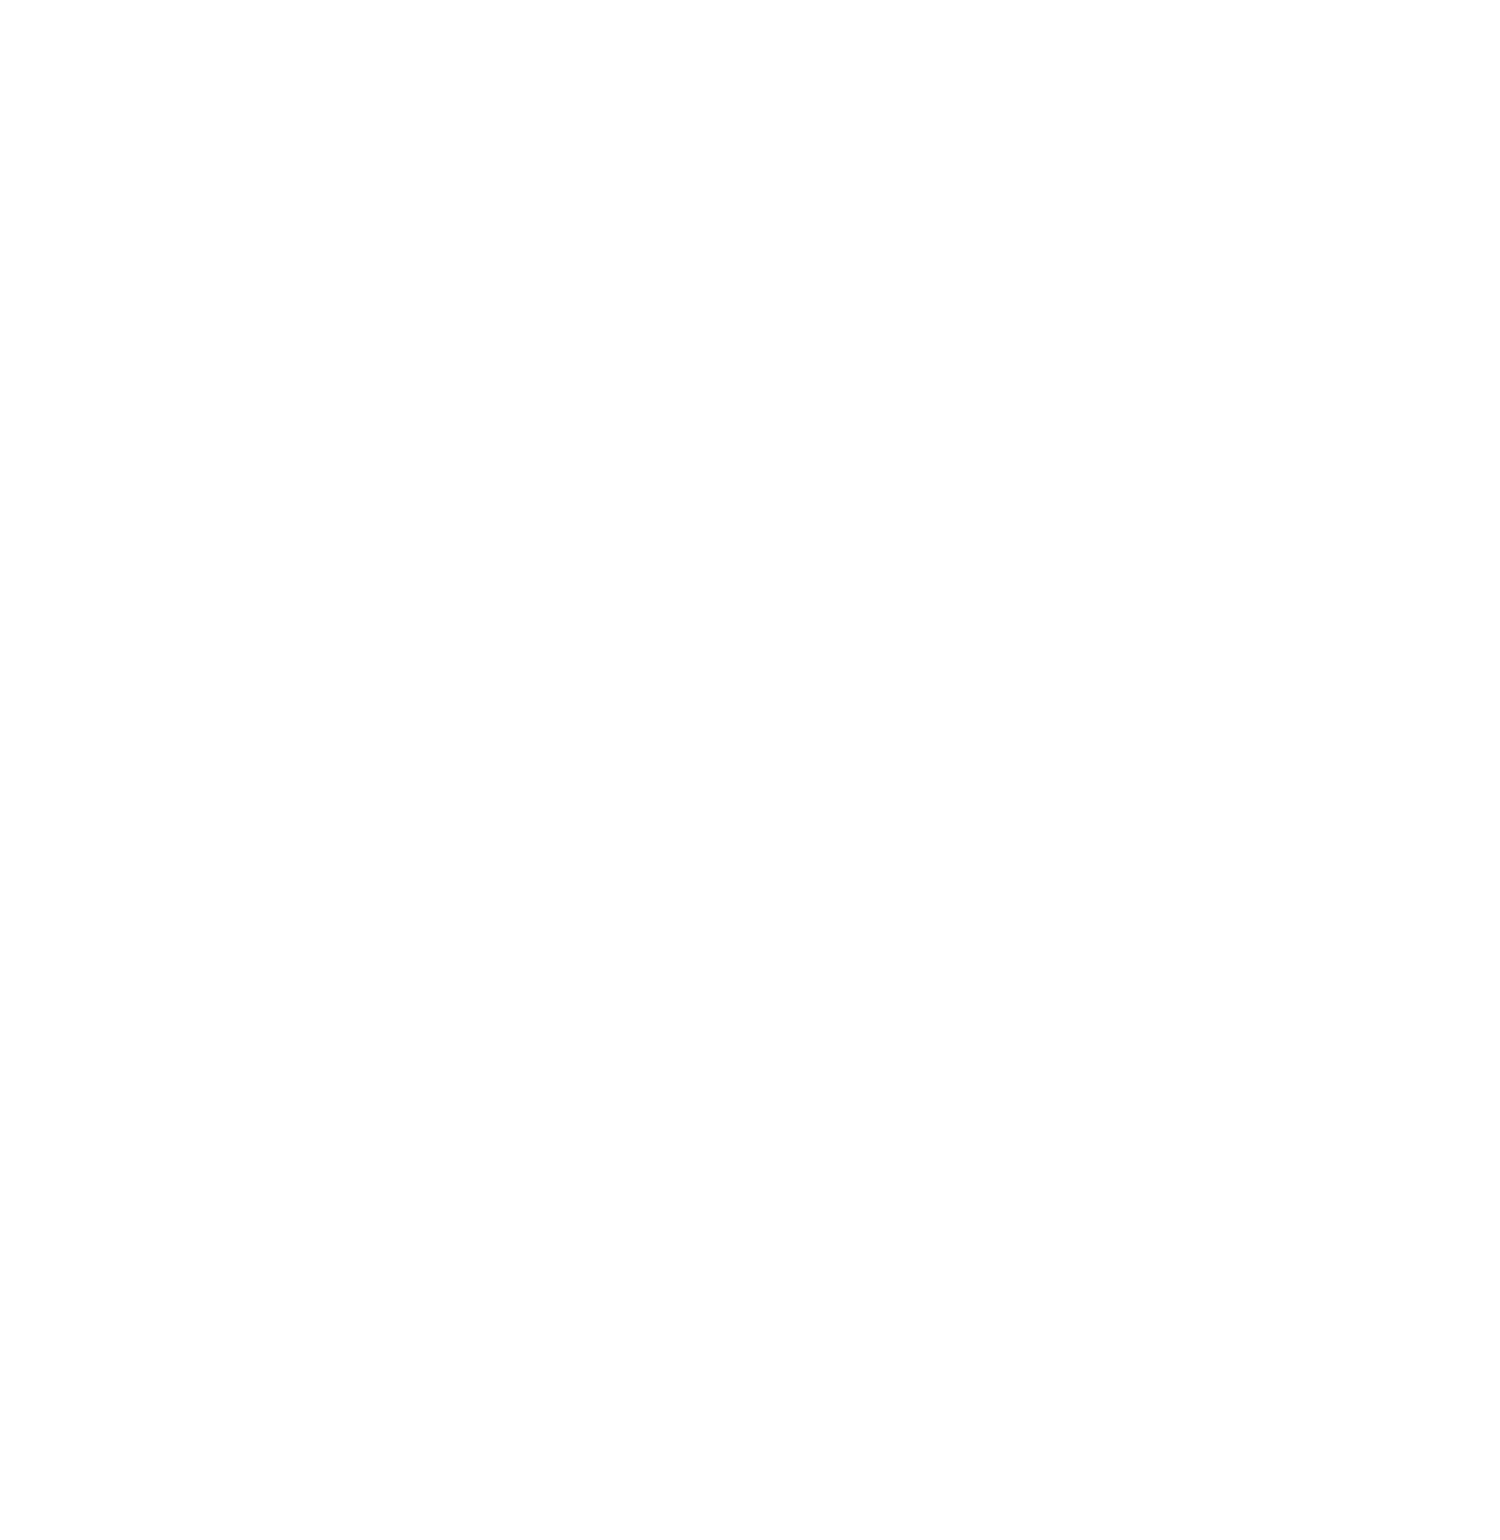 Vegan Commissary